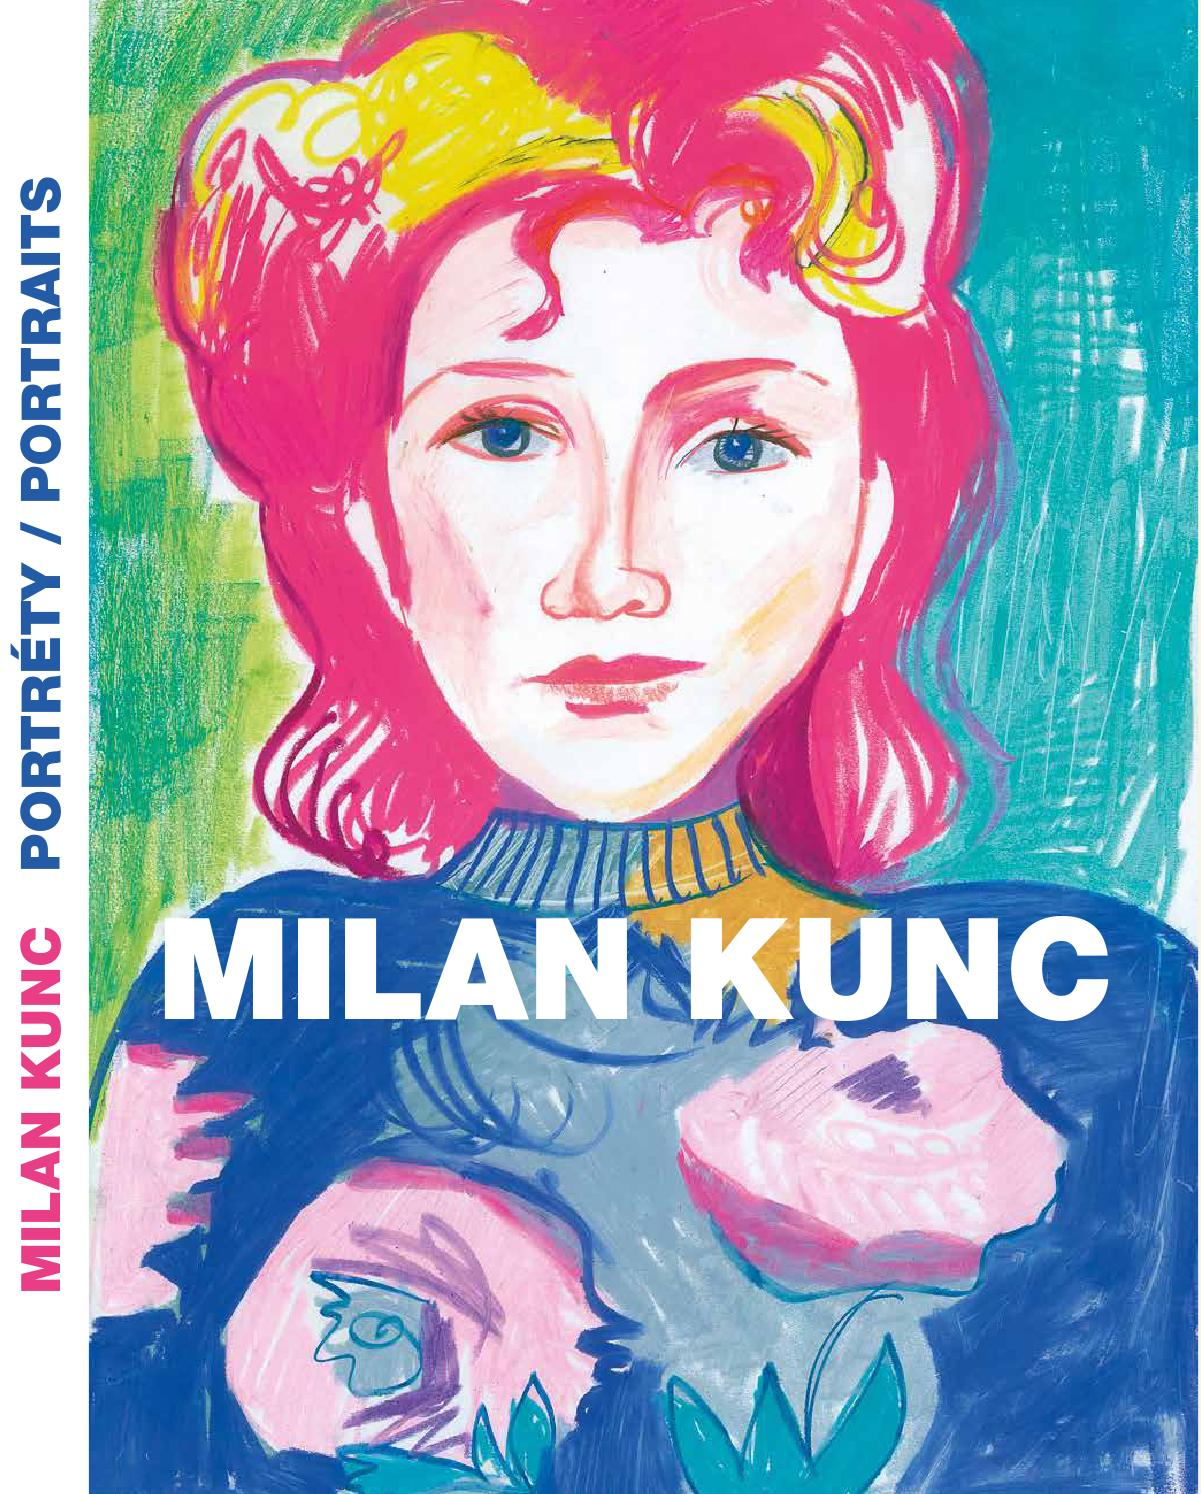 See photos, profile pictures and albums from electronic music and sound design. Milan Kunc Portraits By Tomdesign Issuu